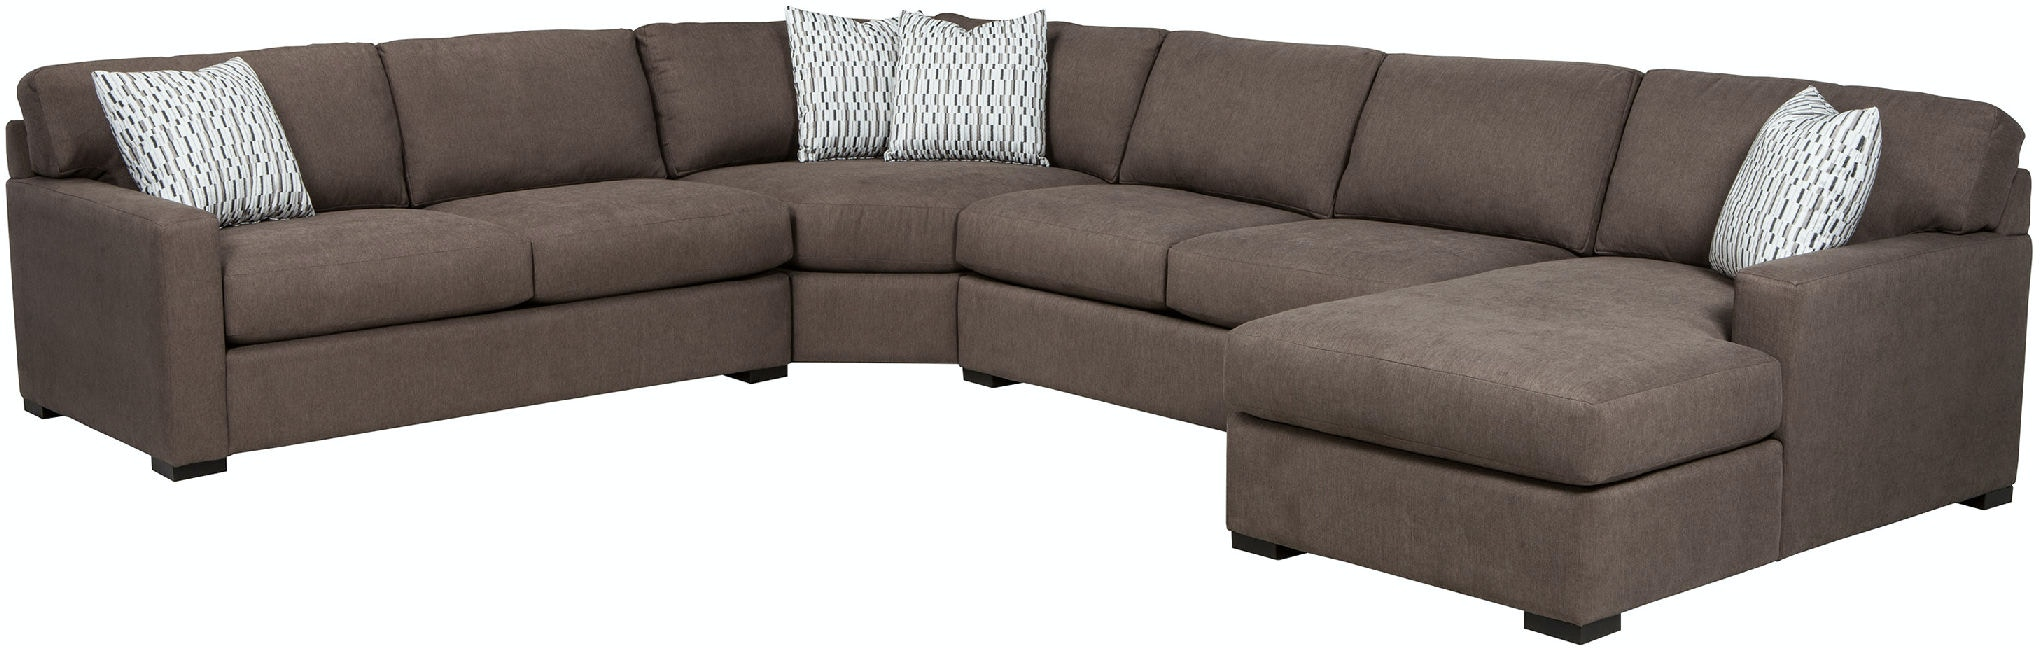 Jonathan Louis International Living Room Gregory Sectional